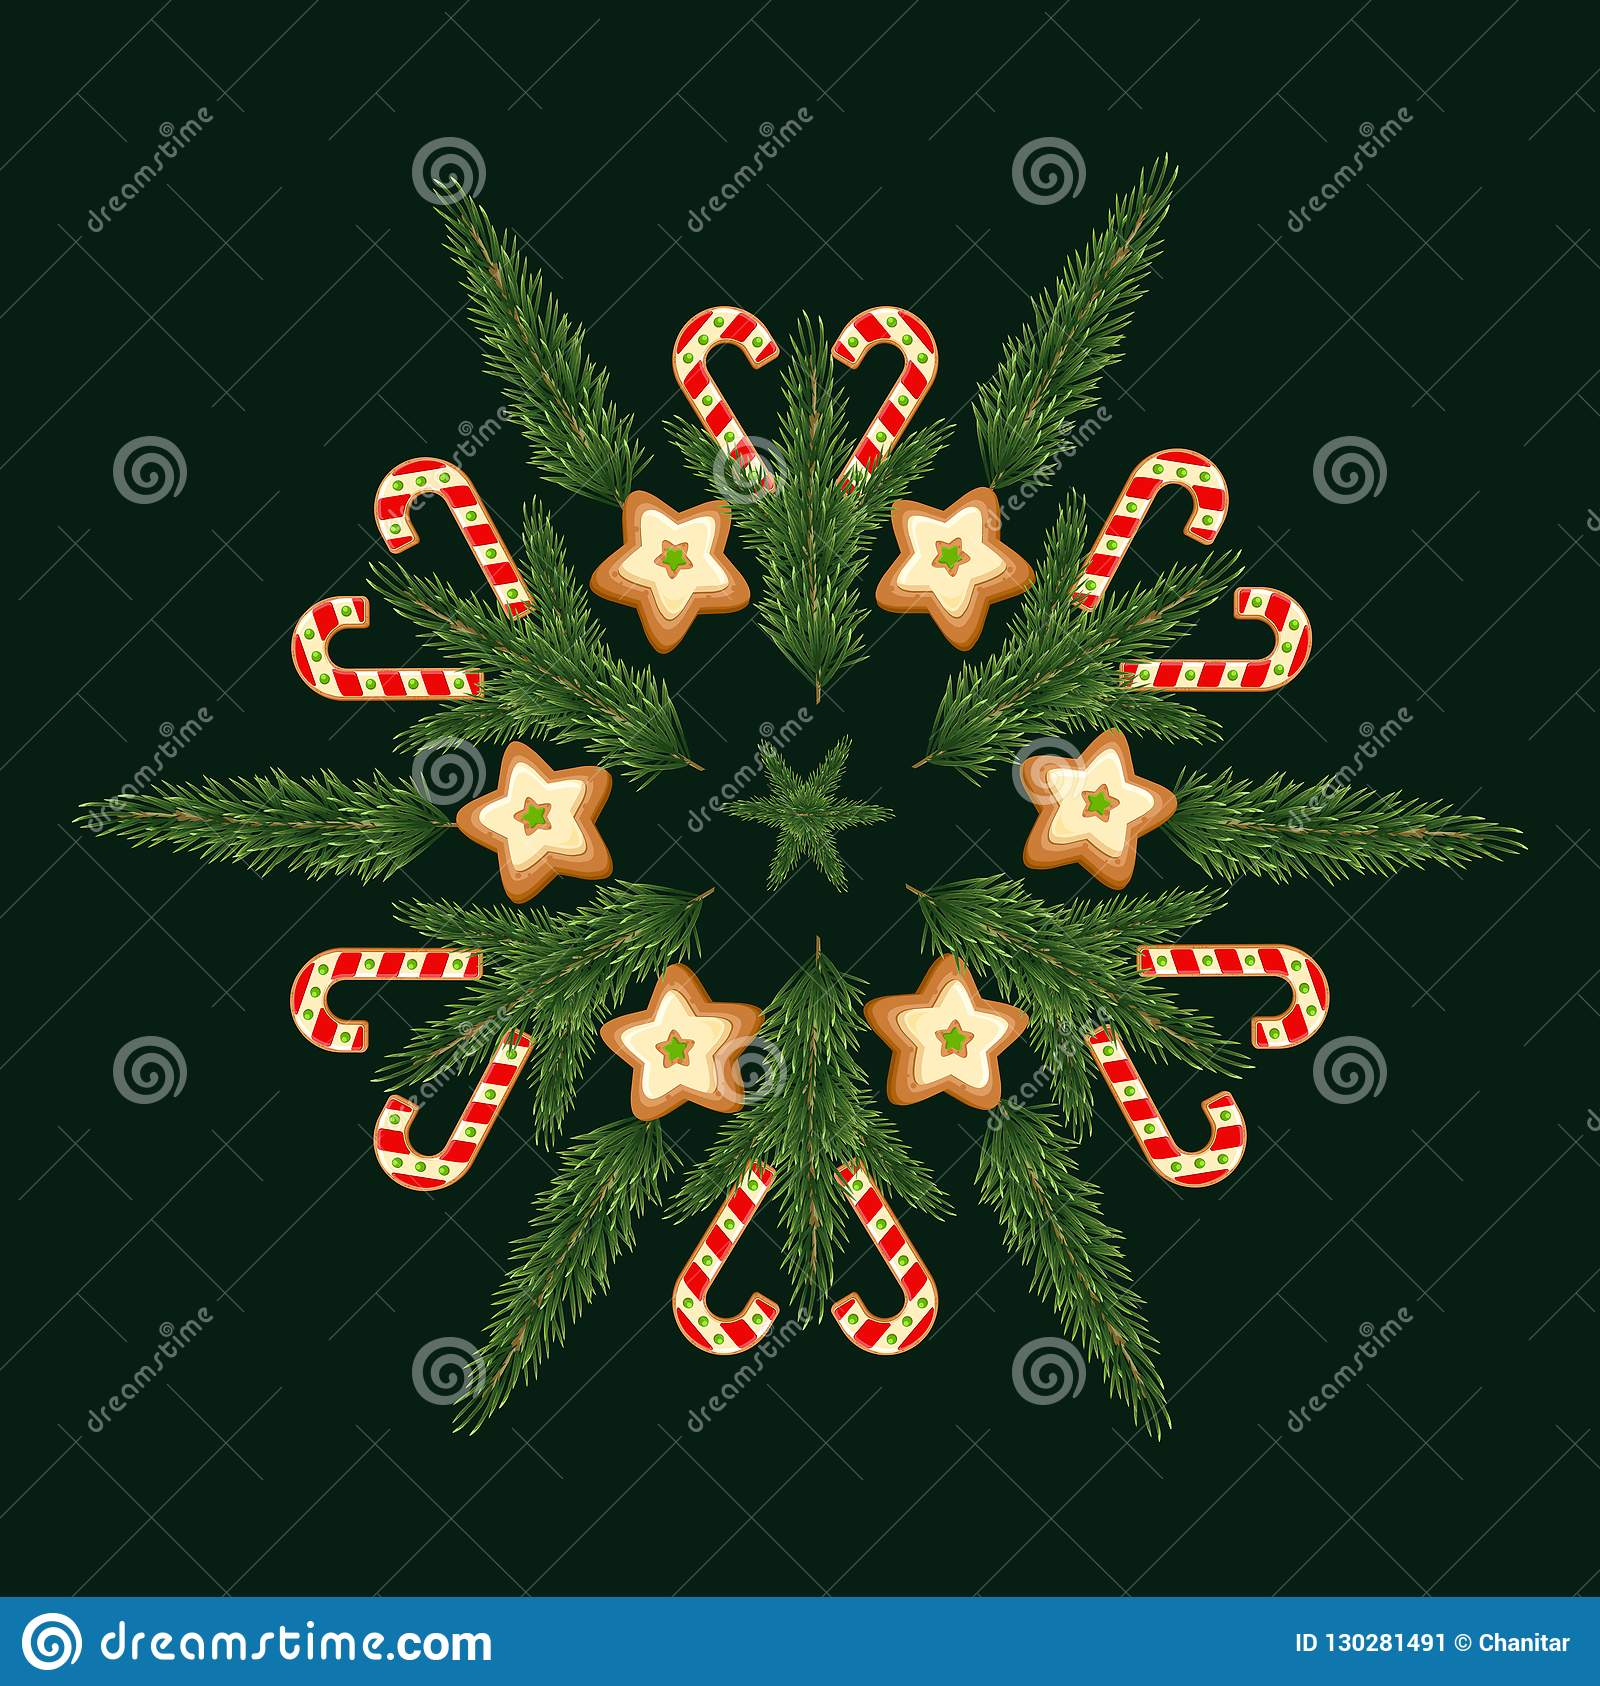 merry christmas and happy new year invitation trendy with cookie and christmas tree designs on snow